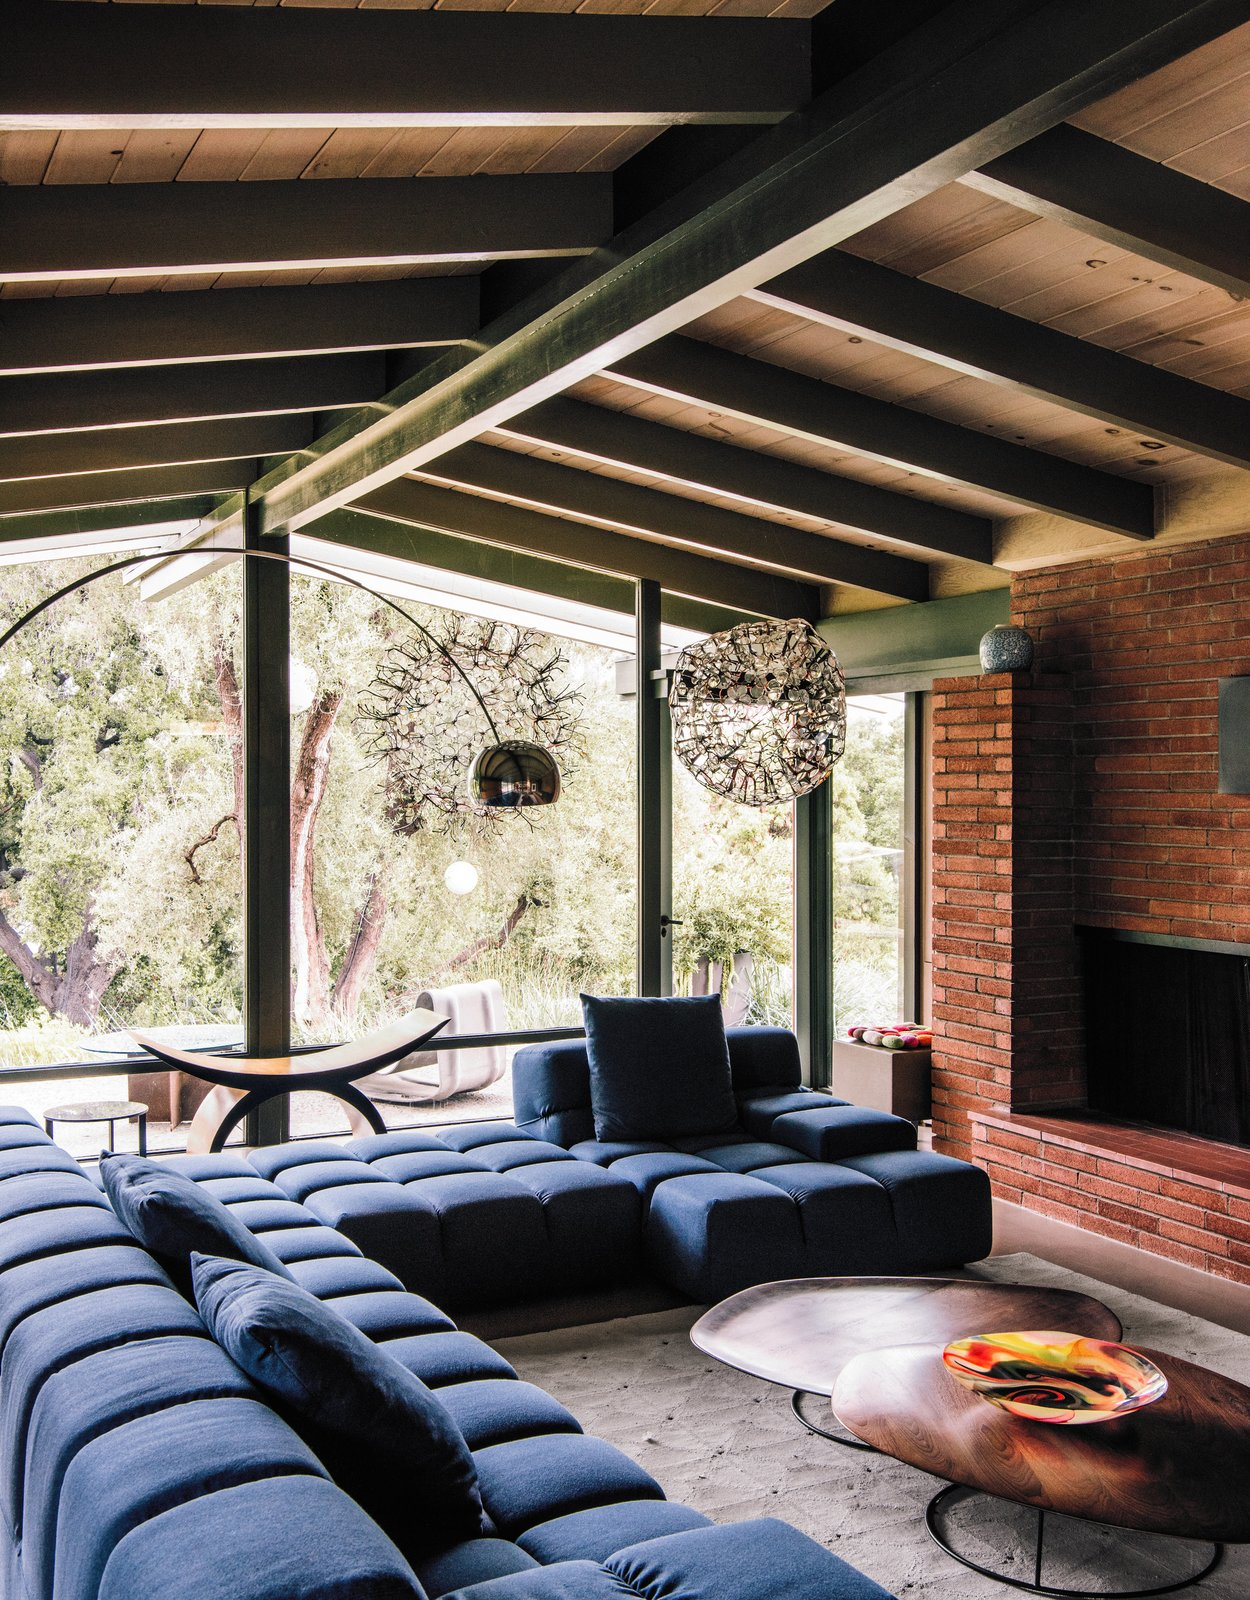 The architects maintained the midcentury post-and-beam construction and Japanese-inspired details of the original building, while brightening and expanding the interior living spaces. Patricia Urquiola's Tufty-Time sofa for B&B Italia meets Pebble coffee tables by Nathan Yong for Ligne Roset in the living room.  Photo 12 of 14 in Creative Revival of a Modernist Gem